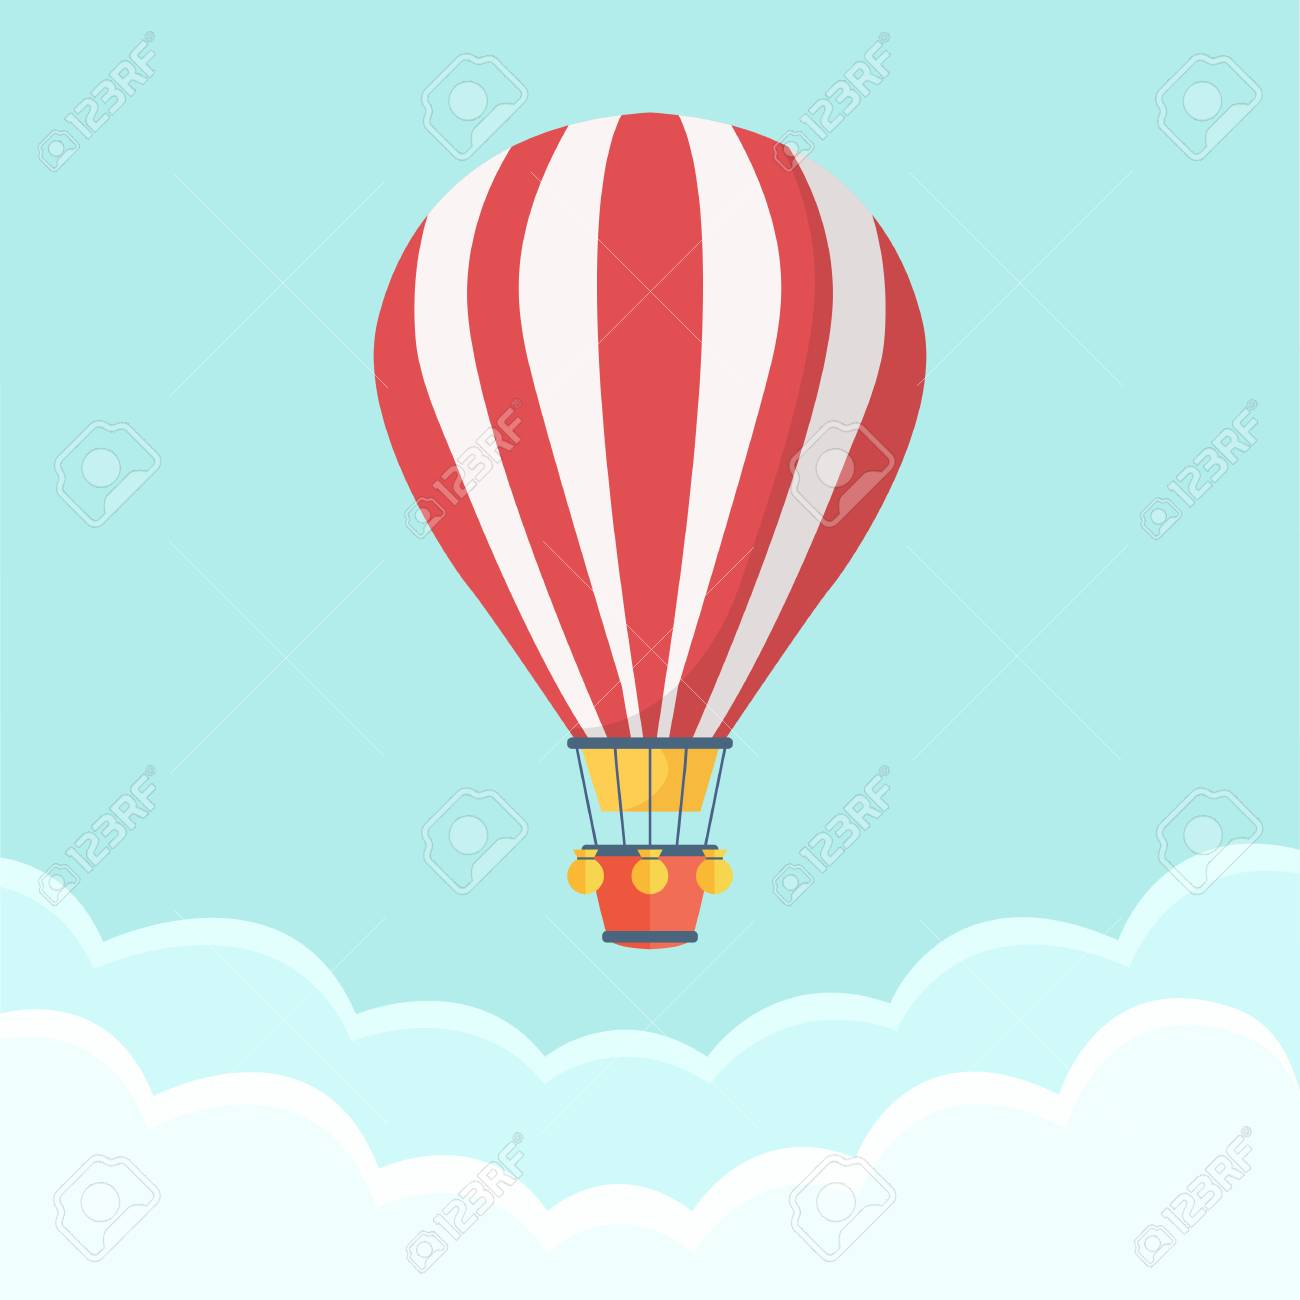 Hot Air Balloon In The Sky With Clouds Flat Cartoon Design Royalty Free Cliparts Vectors And Stock Illustration Image 95712998